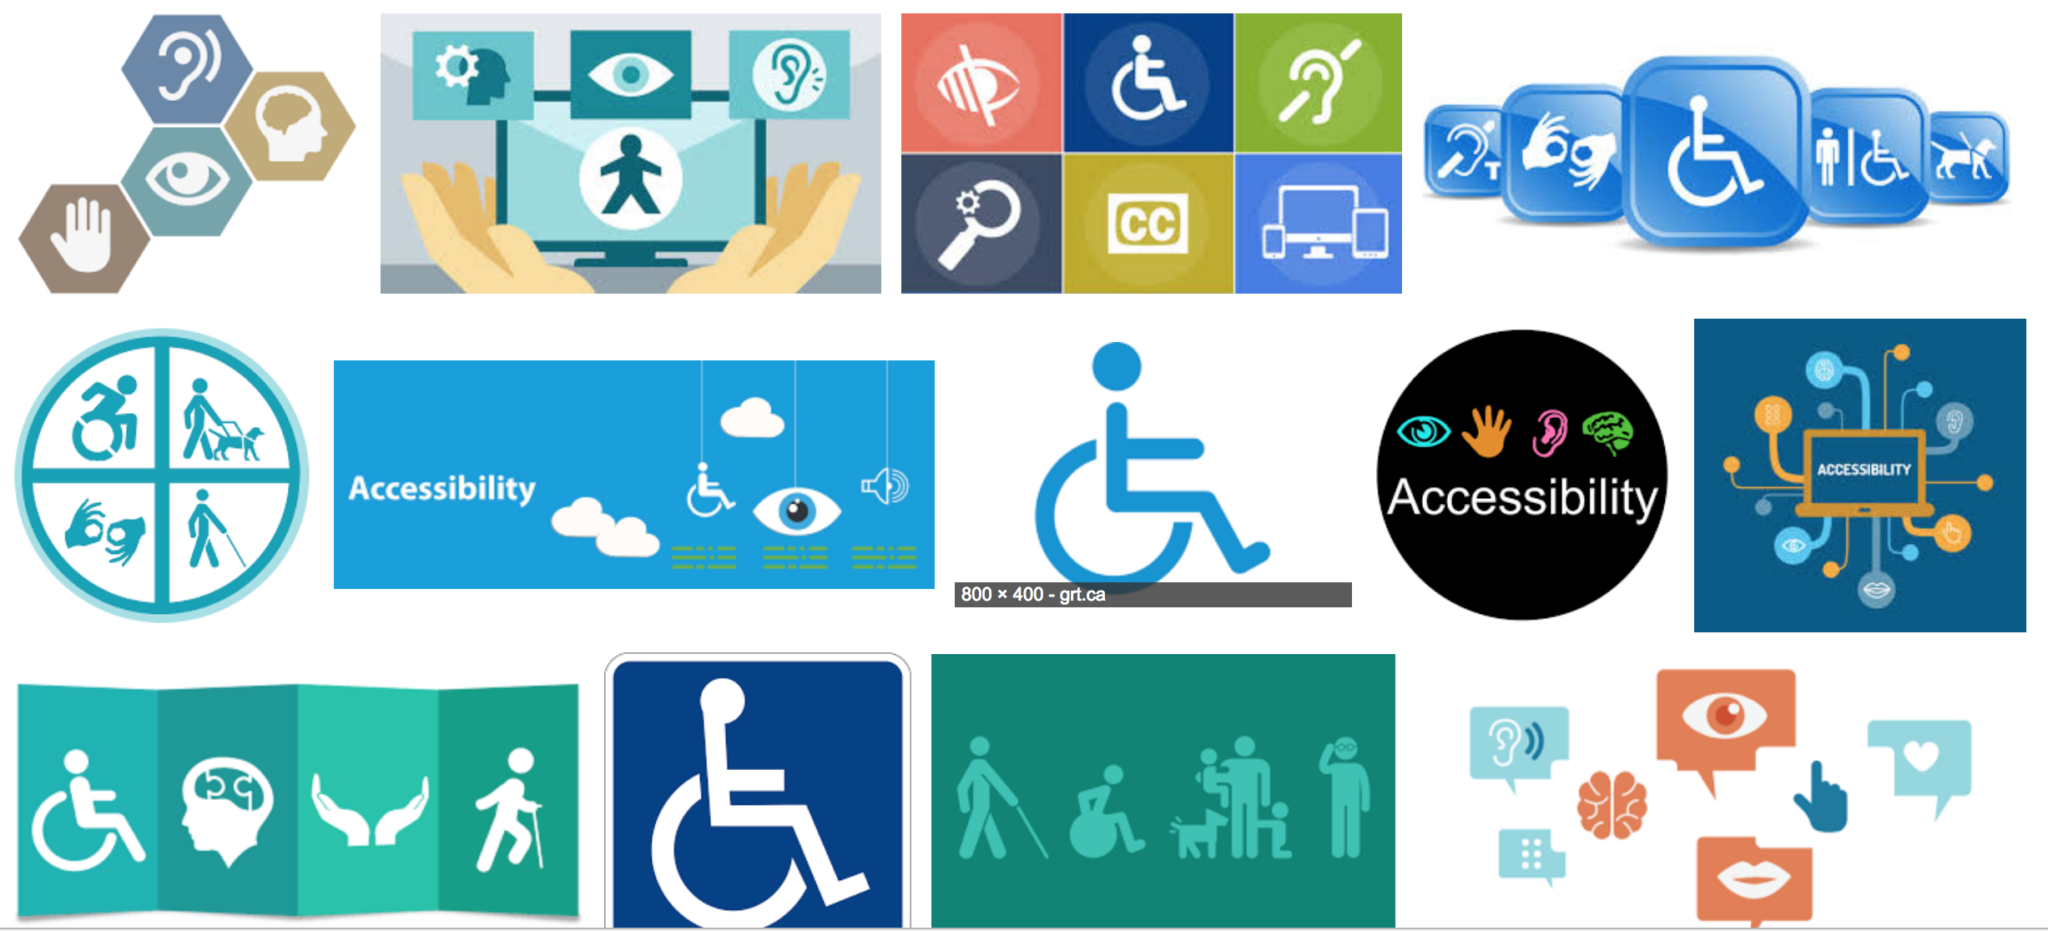 Google image results for 'accessibiliyy'. It is a sea of icons